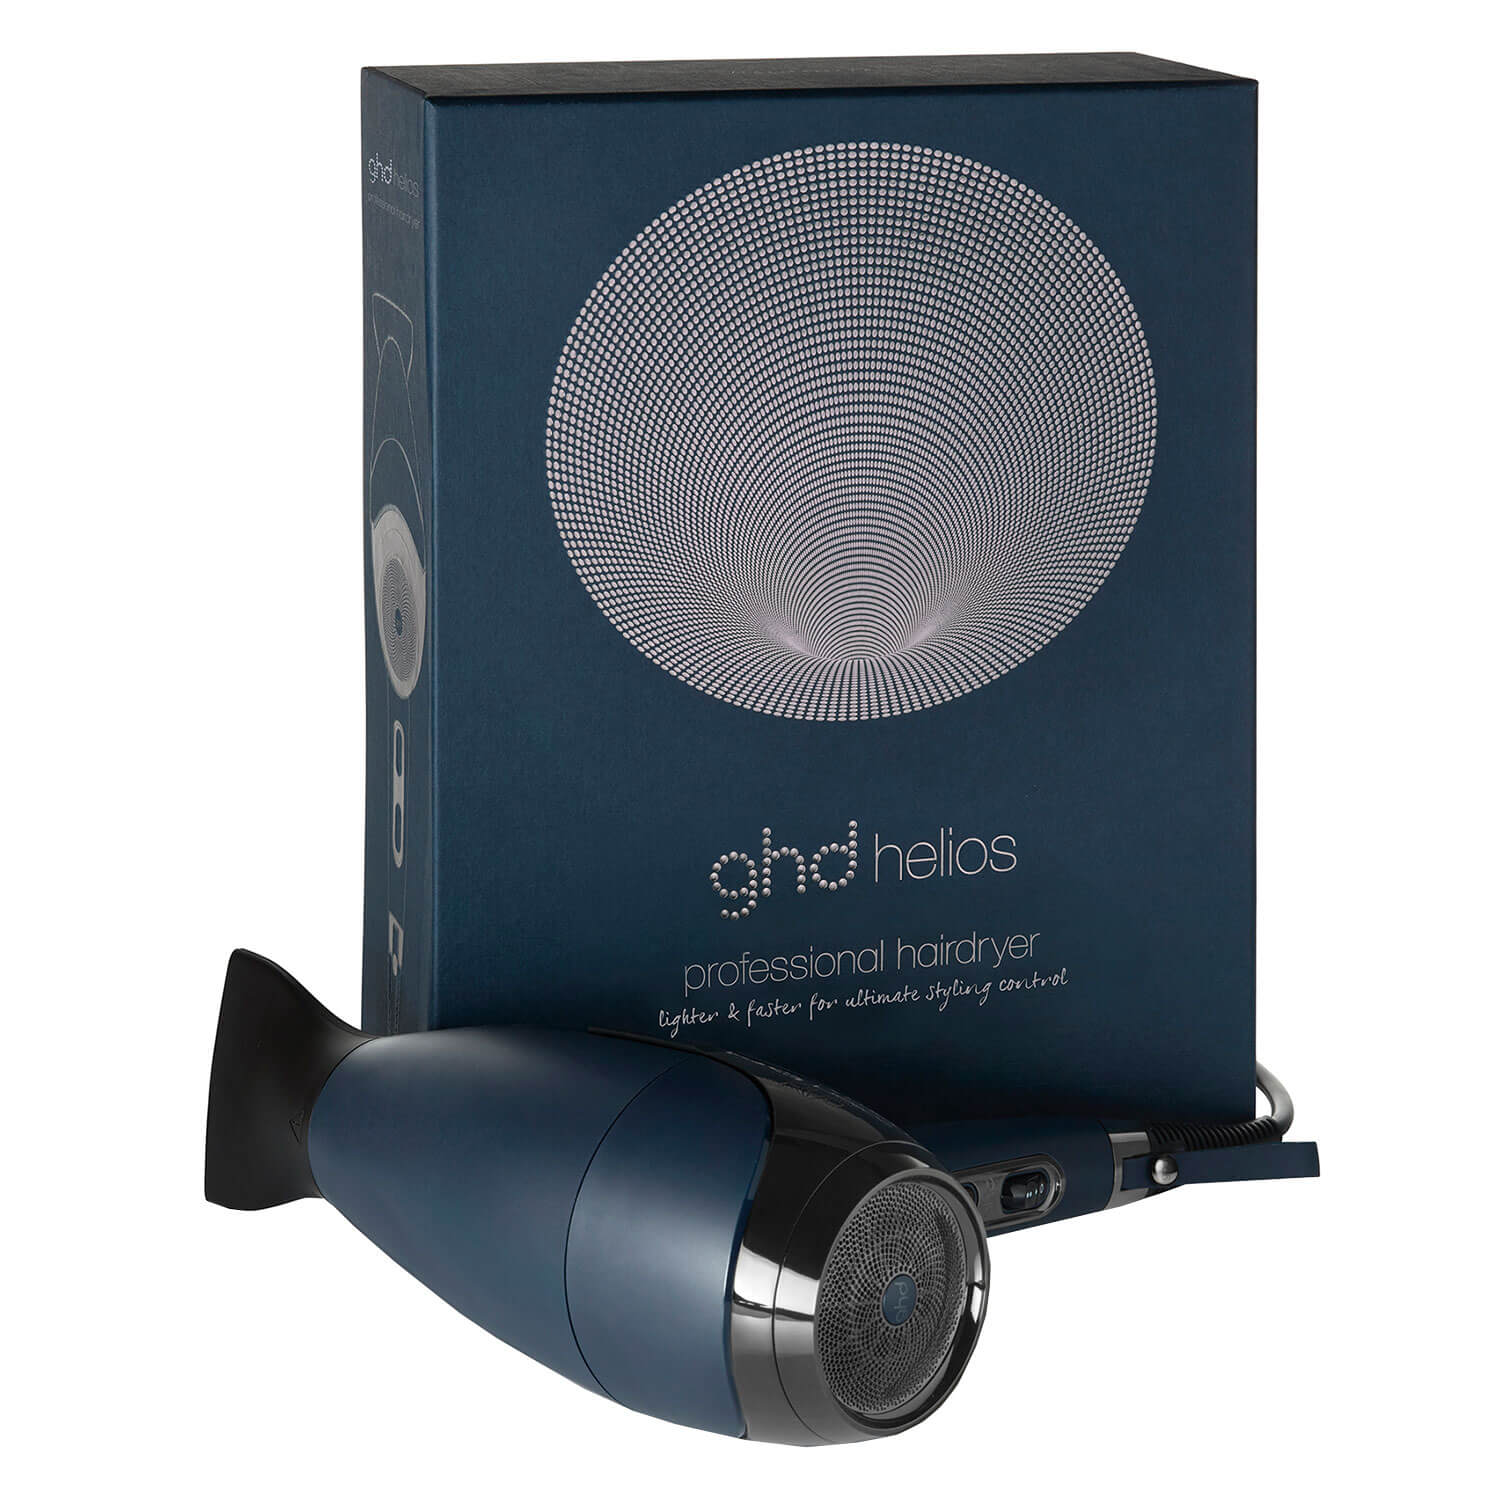 ghd Helios - Professional Hairdryer Ink Blue